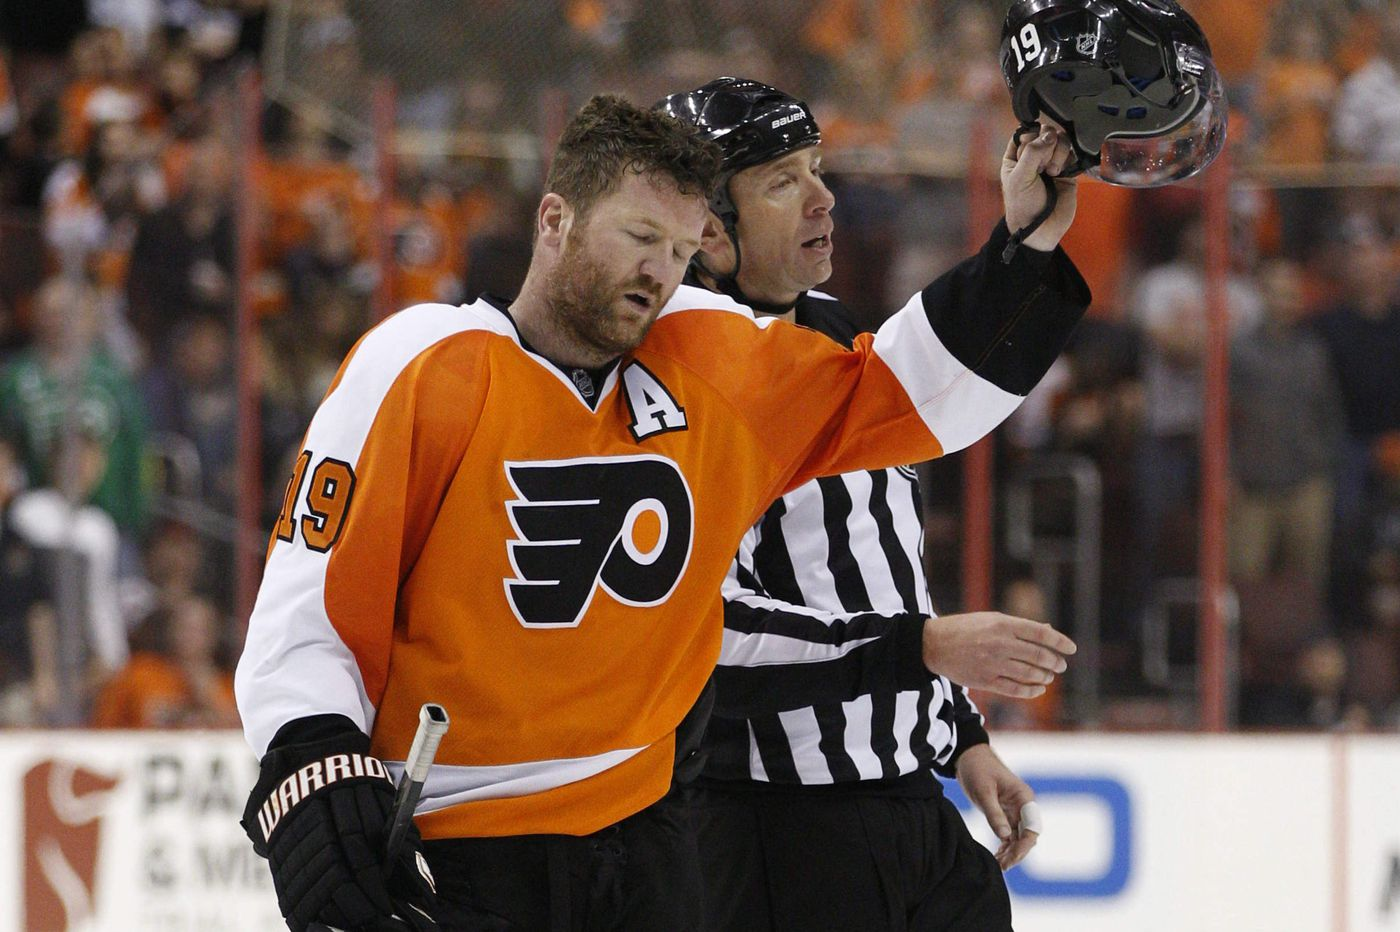 Flyers' Hartnell fined for spearing